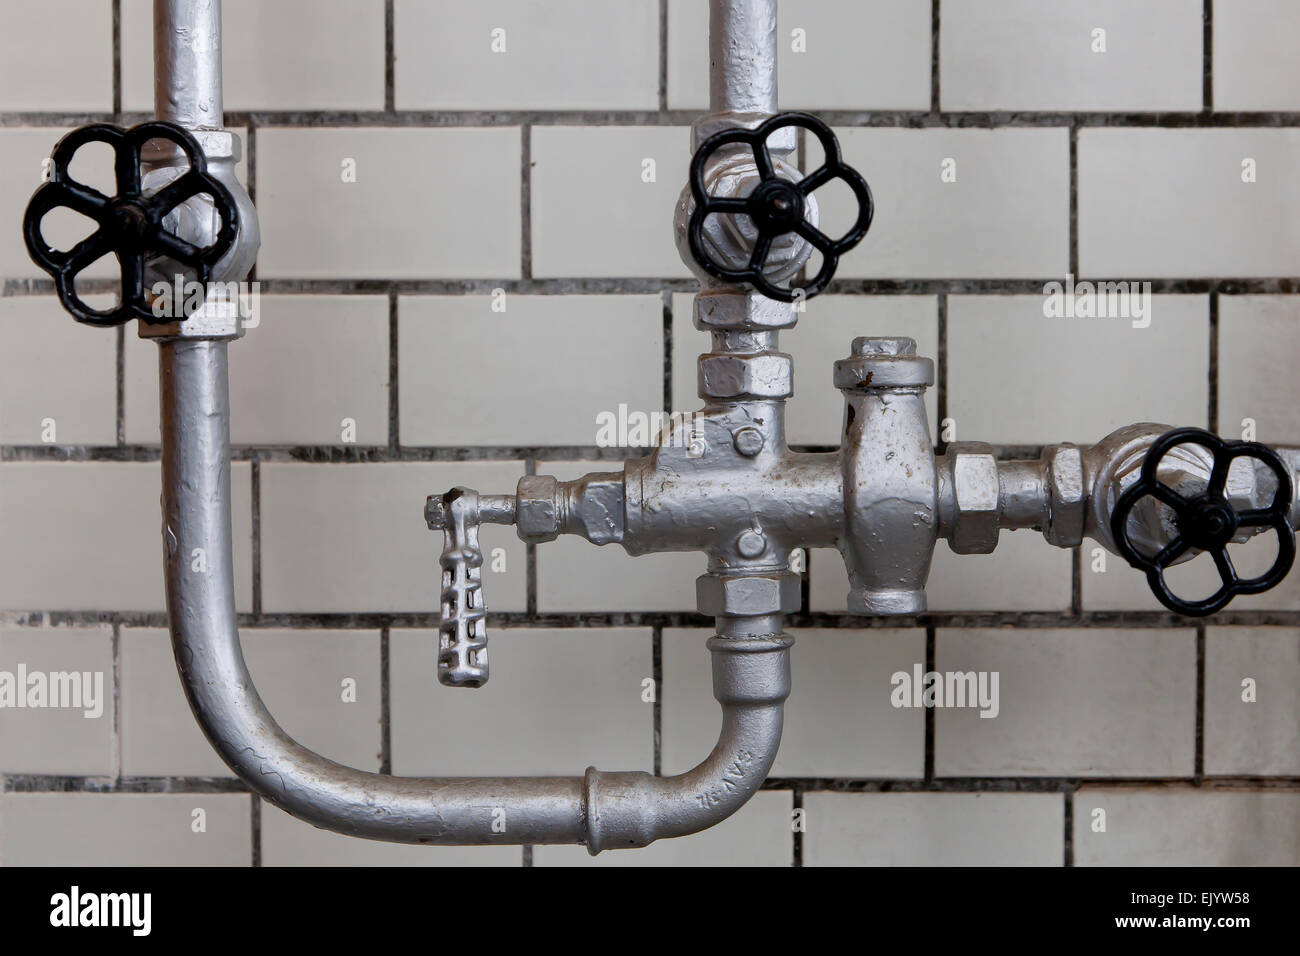 Old pipes and valves - Stock Image